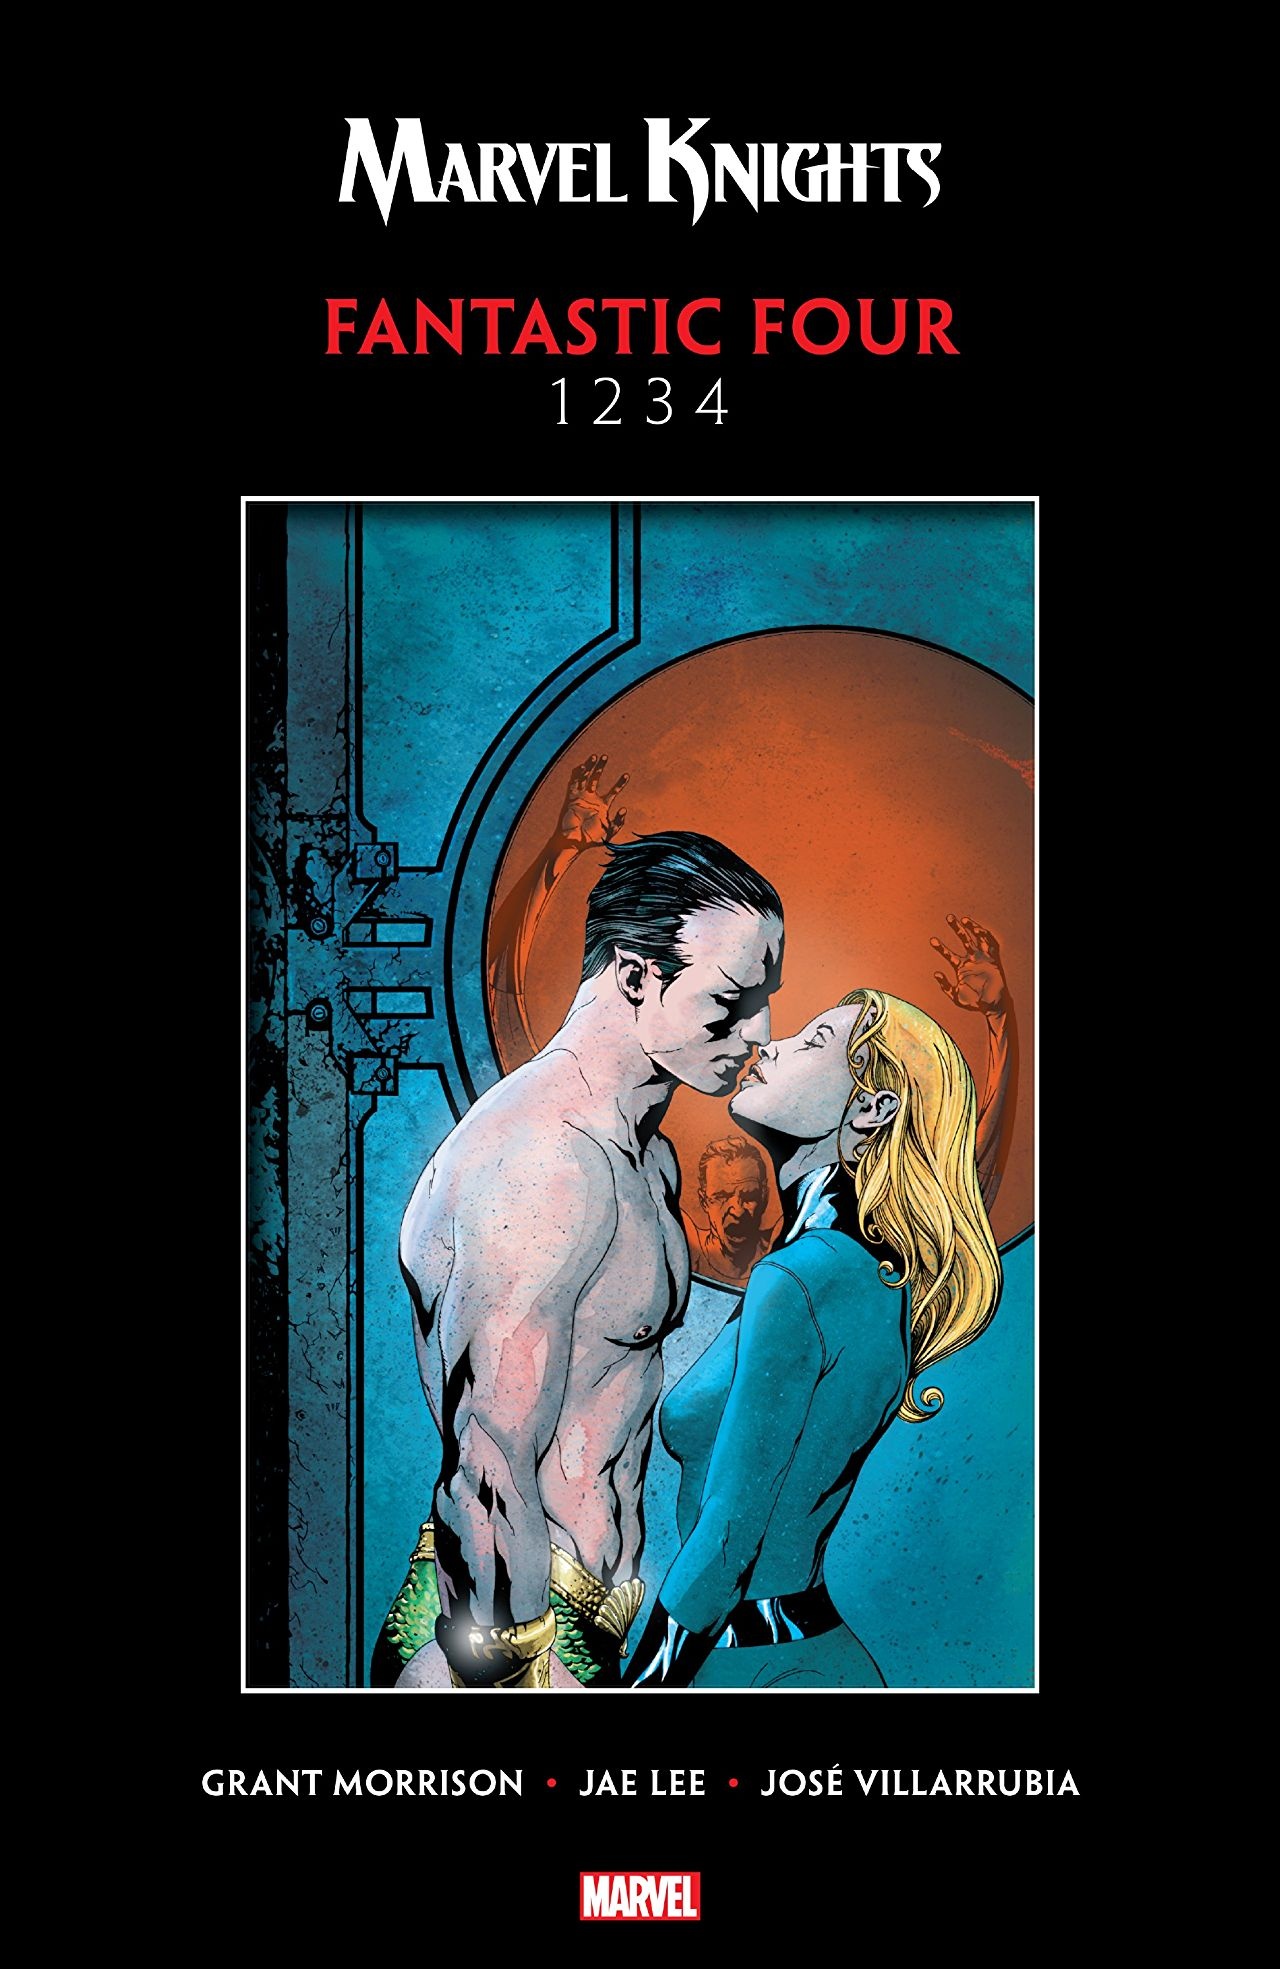 'Fantastic Four 1234' review: Edgy, dark, and raw